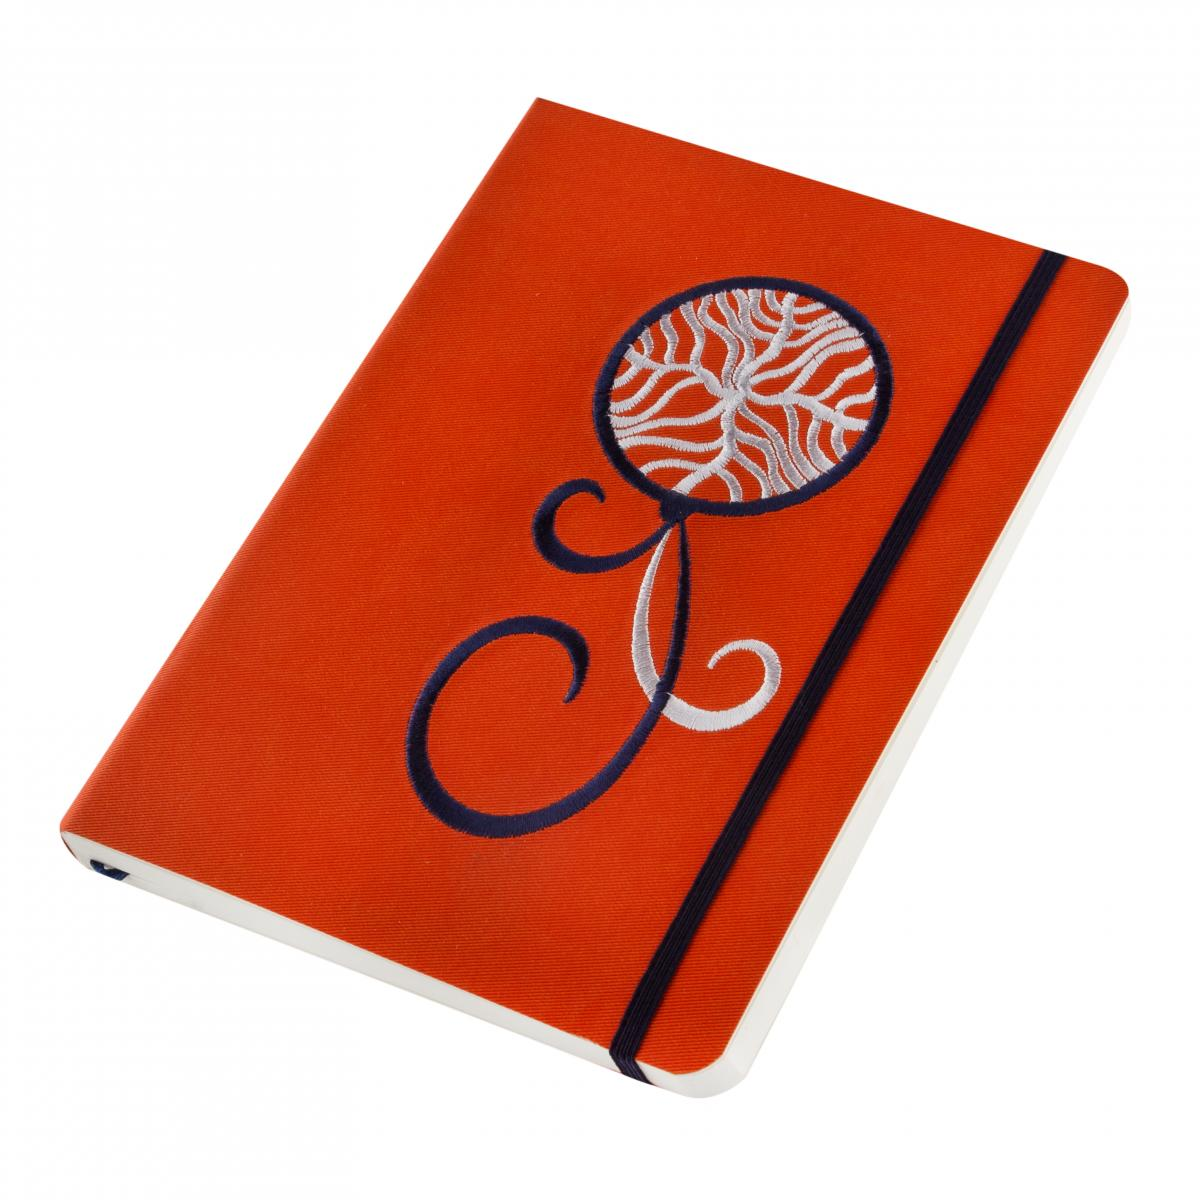 Eco-leather notebook with embroidered Dream catcher, orange. Photo №2. | Narodnyi dim Ukraine